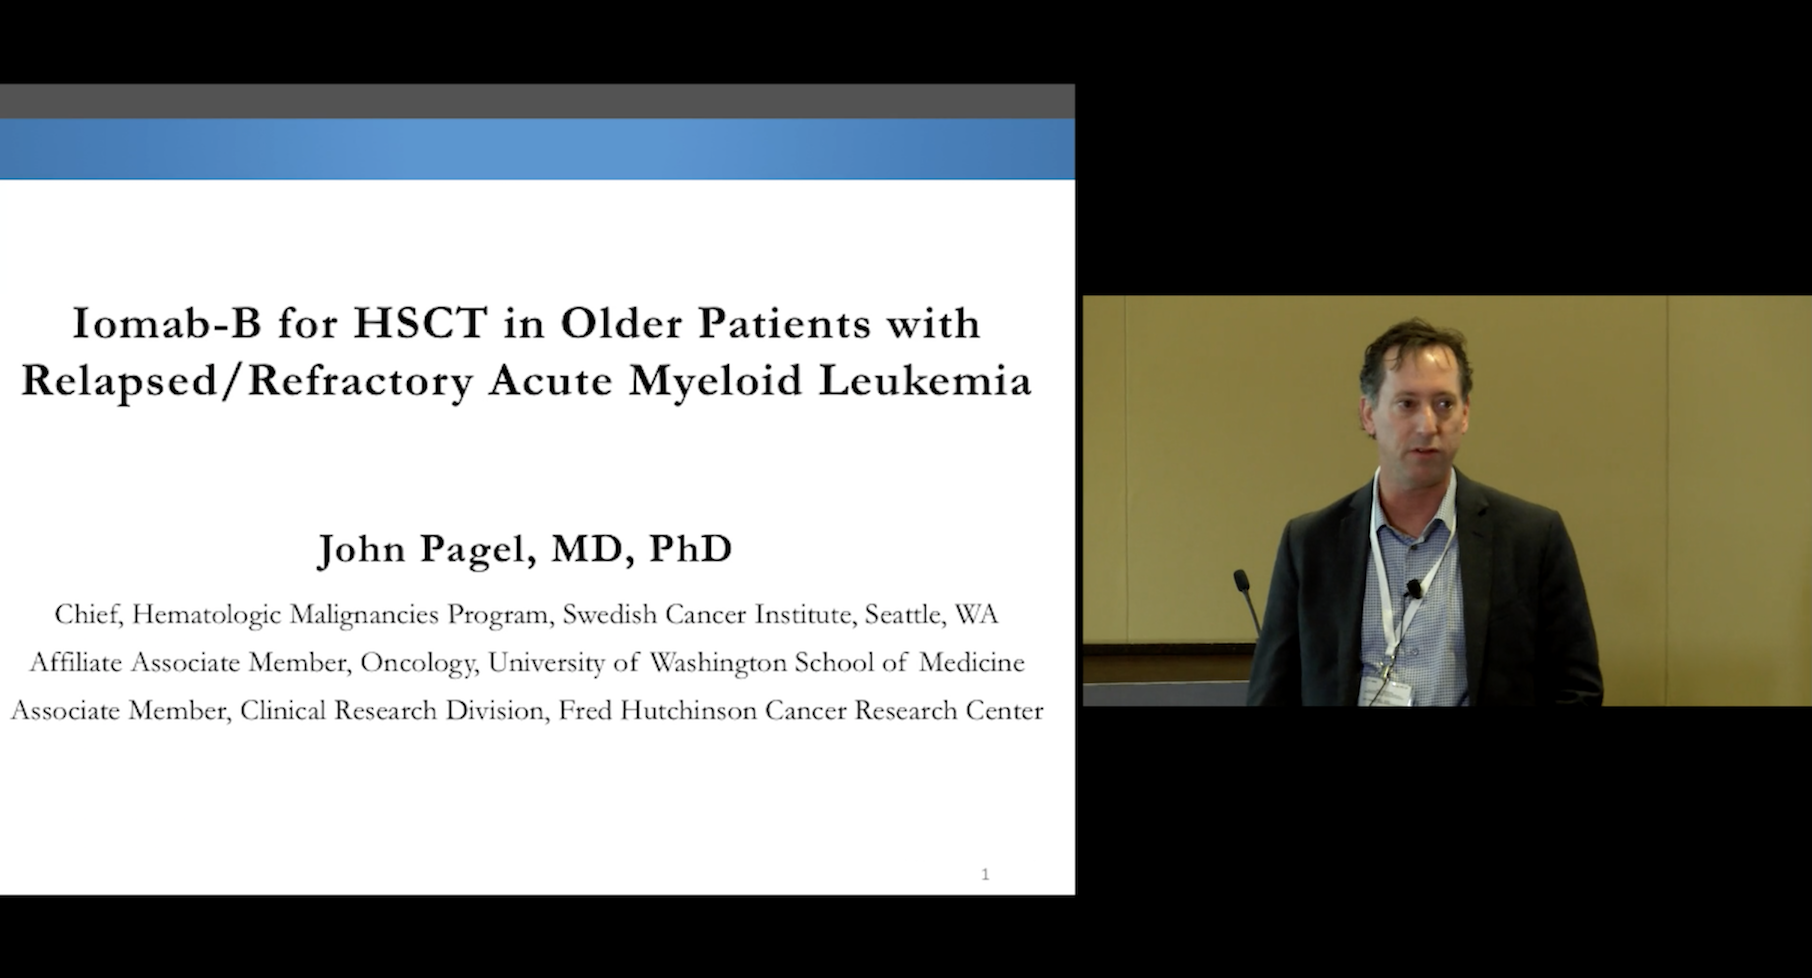 John Pagel, M.D., Ph.D. discussing Iomab-B for HSCT (bone marrow transplant) in Older Patients with Relapsed/Refractory Acute Myeloid Leukemia